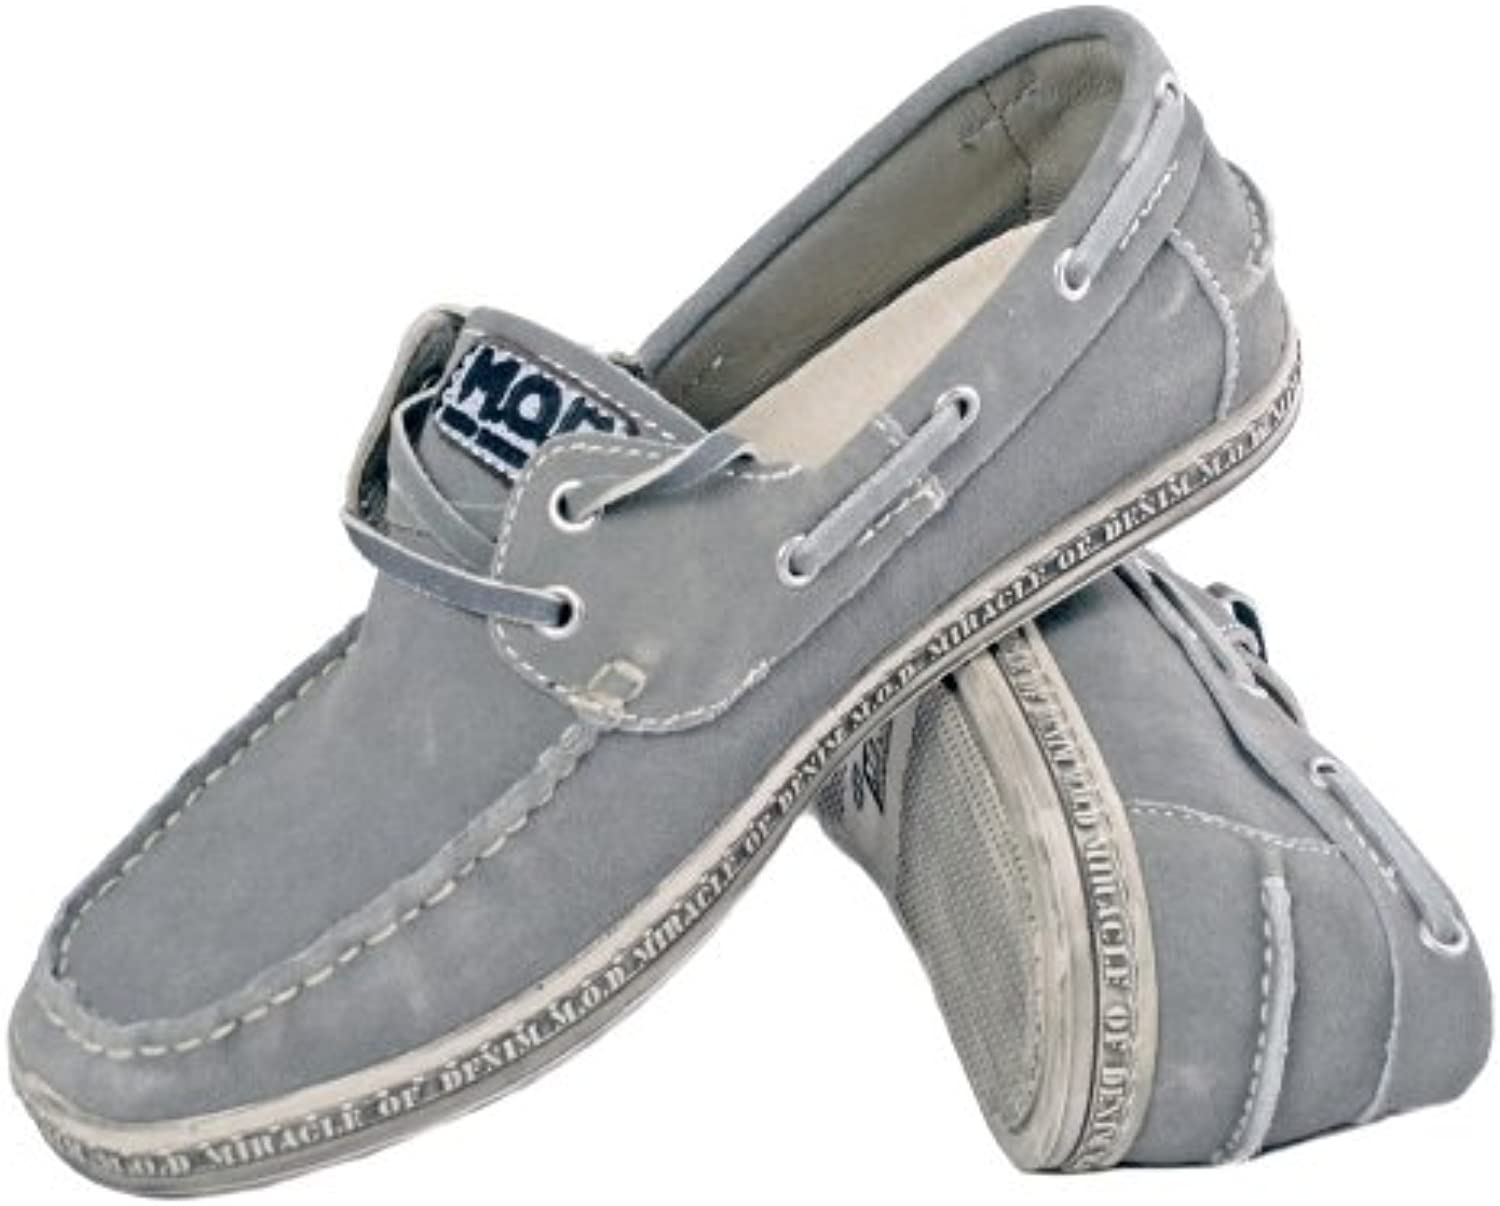 M.O.D Herren Leder Schuhe MIRACLE OF DENIM grey grau MOD ACS S 503